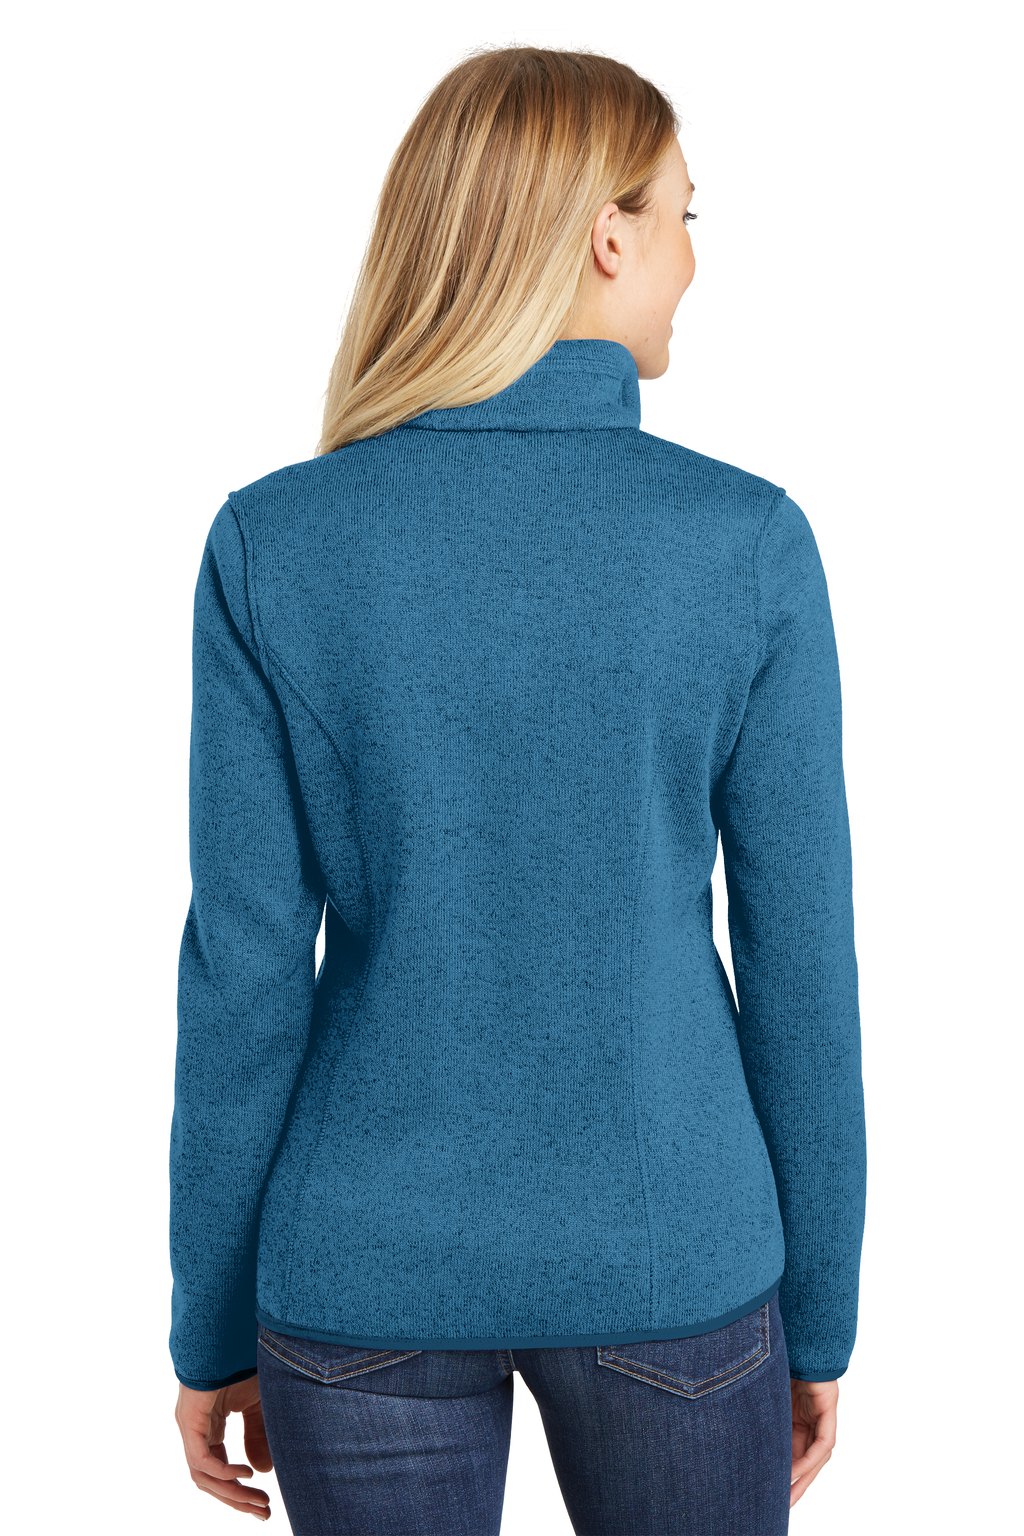 J&M Ladies Sweater Fleece